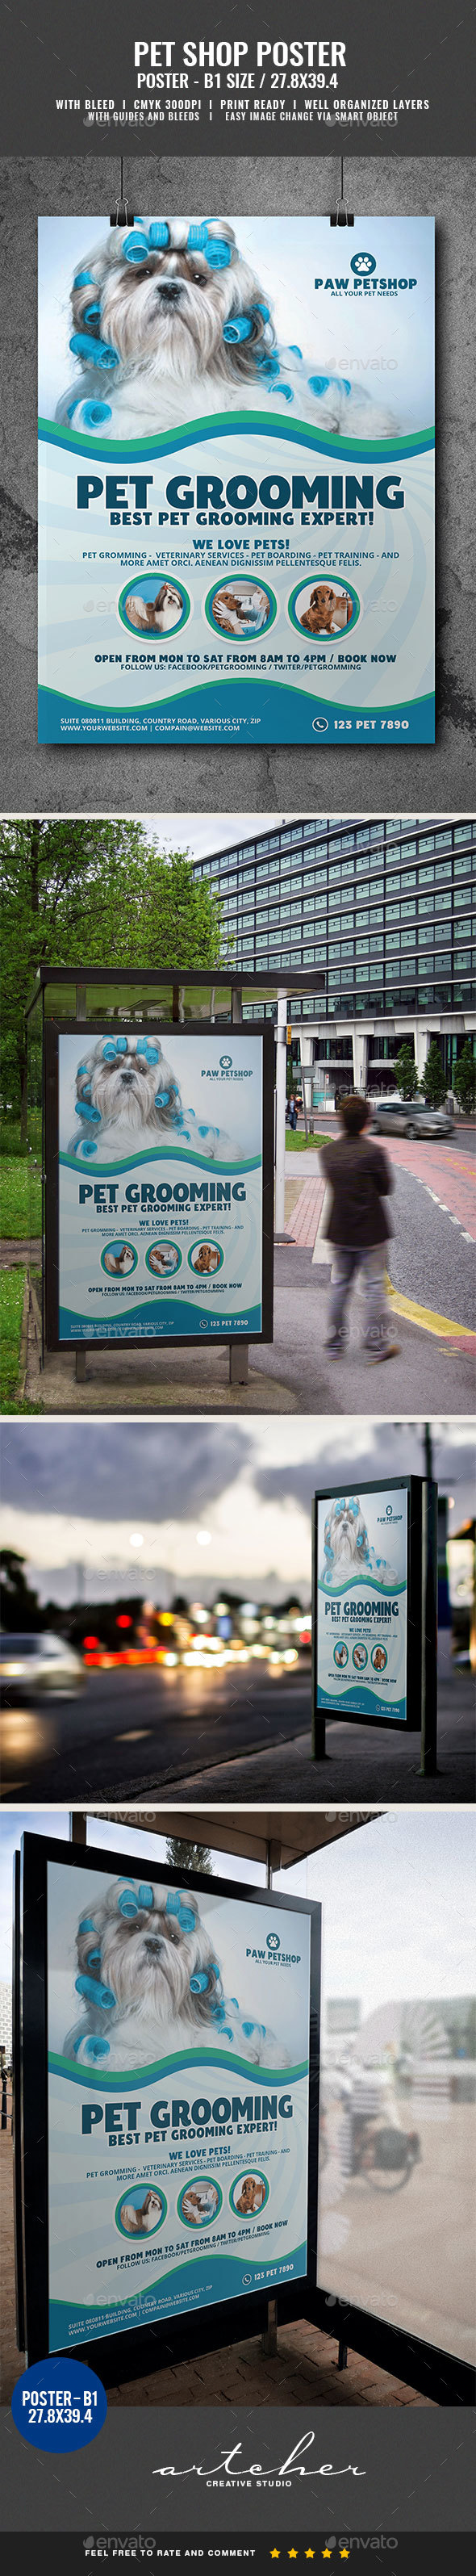 Pet Grooming Services Poster - Signage Print Templates